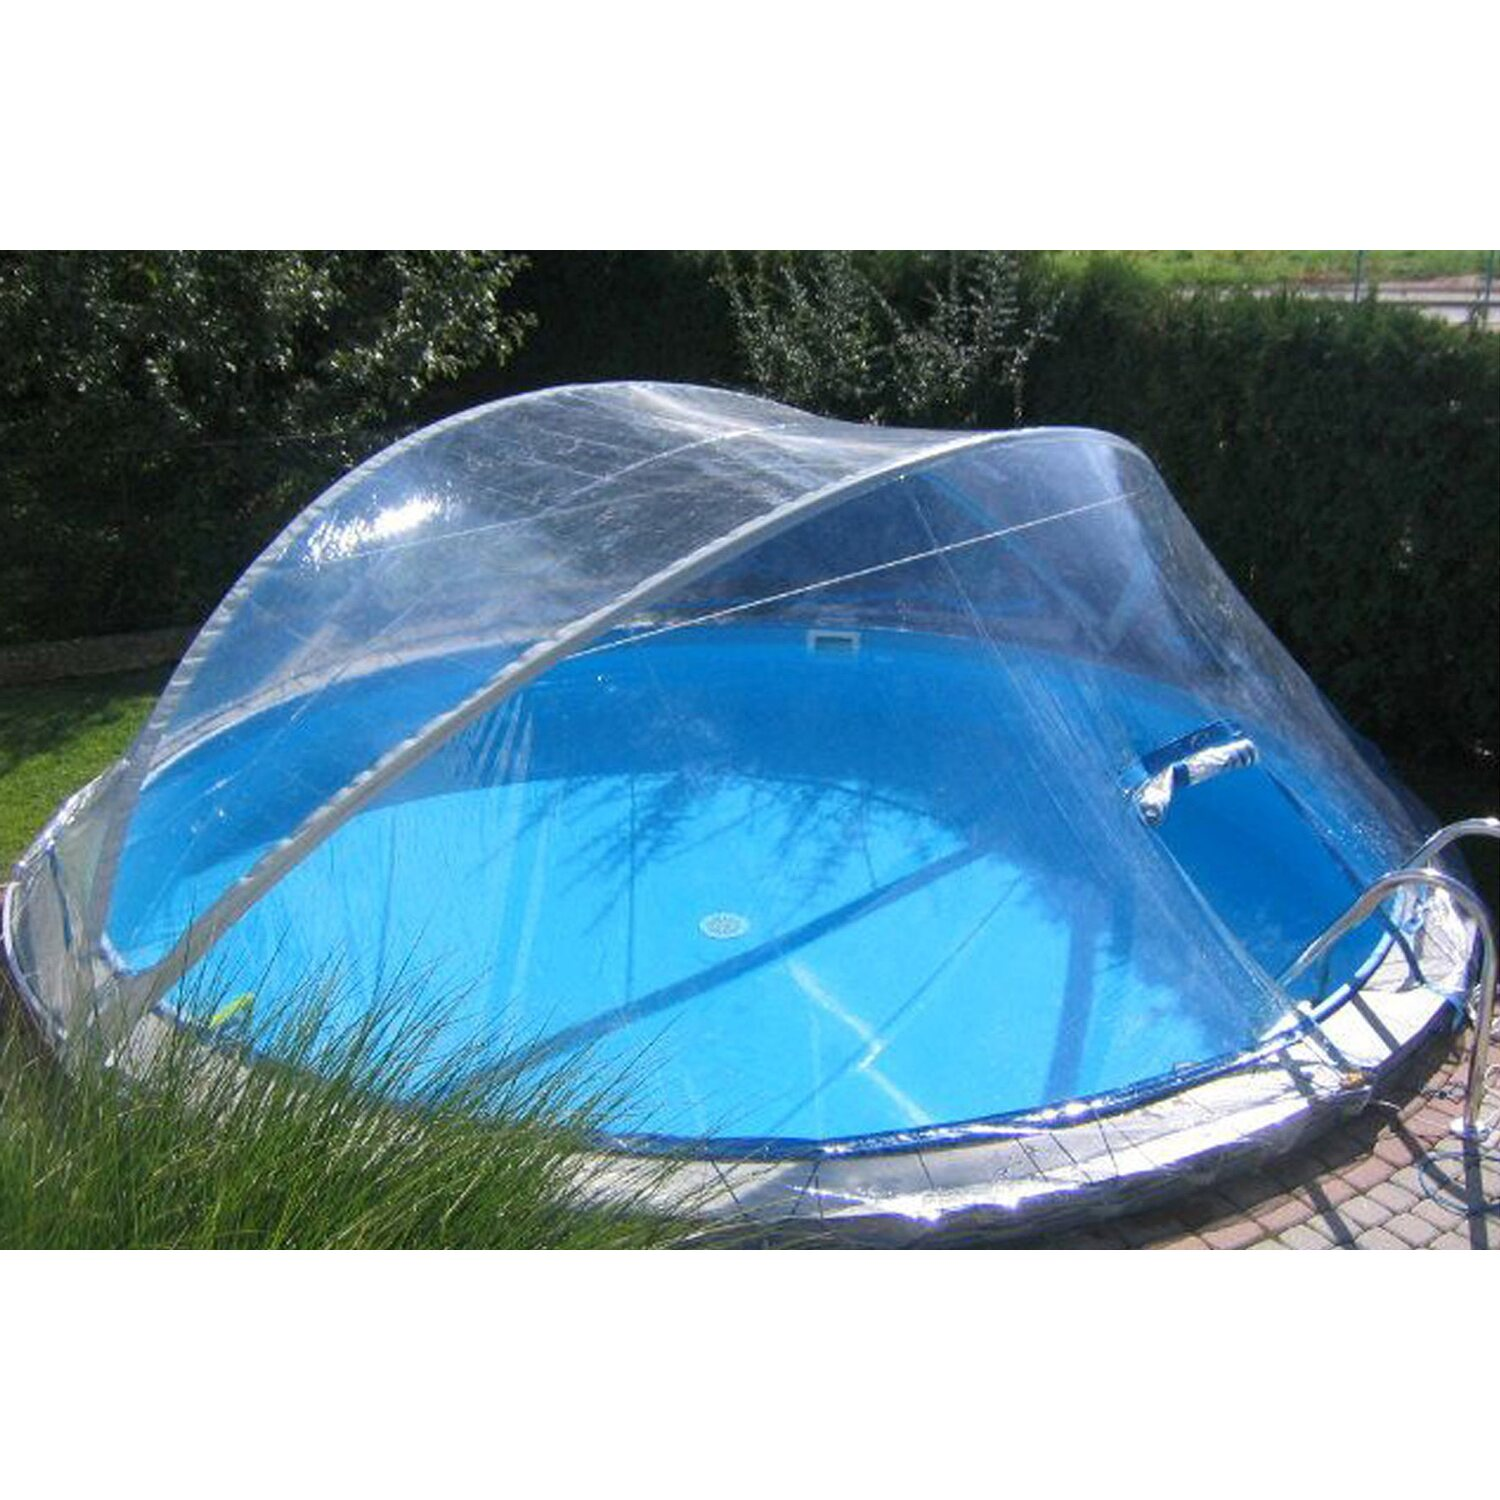 summer fun pool berdachung cabrio dome f r pools 450 cm. Black Bedroom Furniture Sets. Home Design Ideas